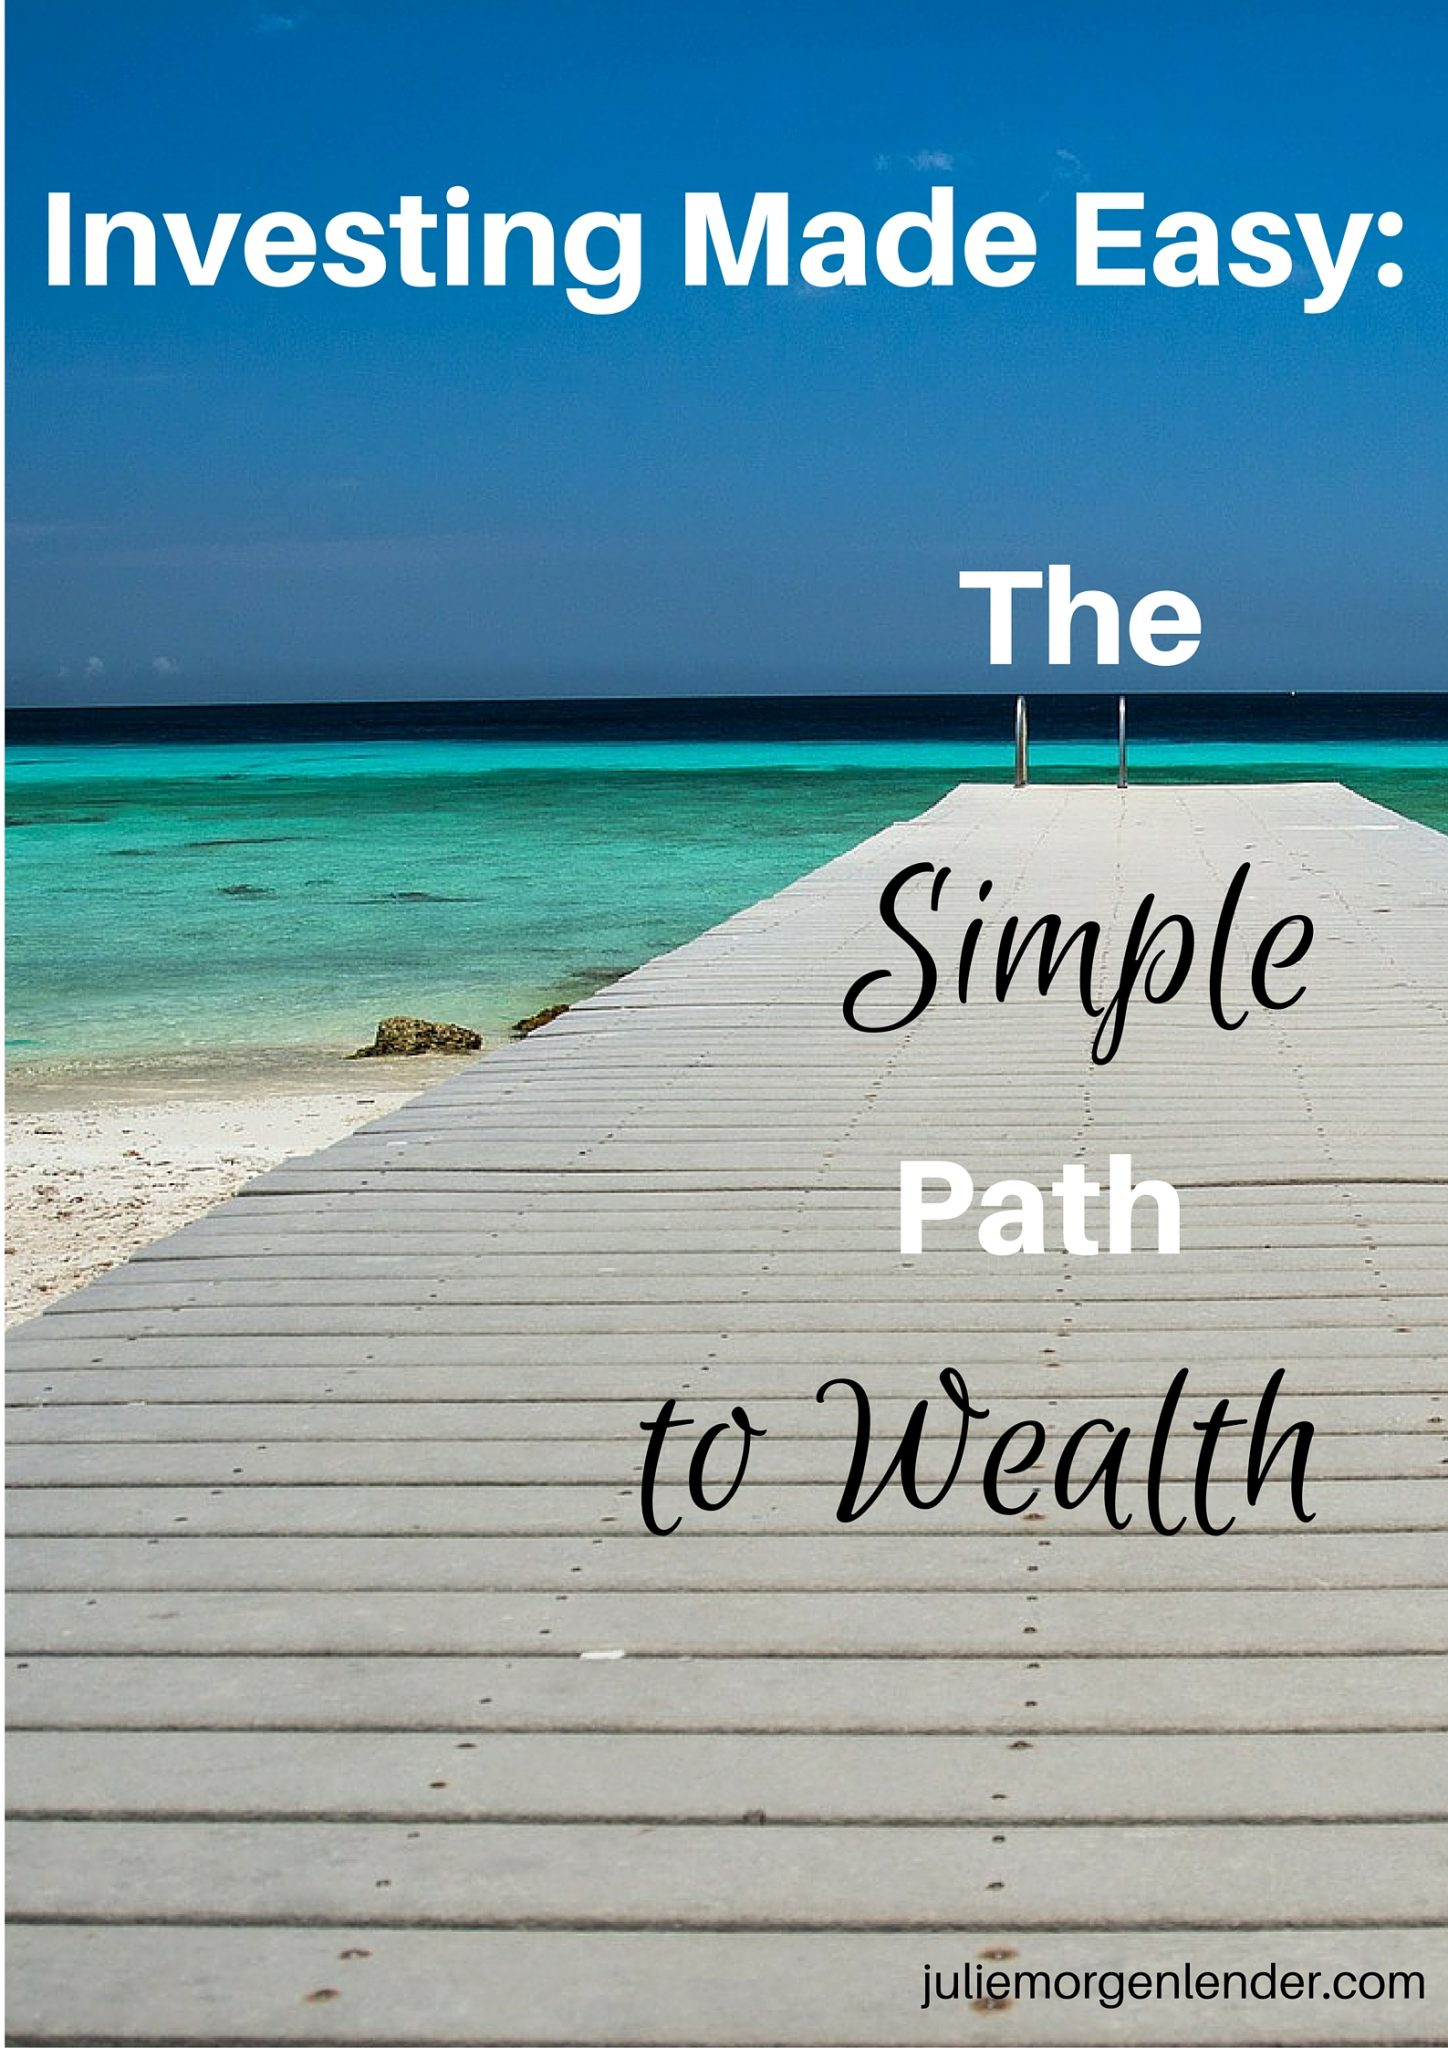 Investing made easy- The Simple Path to Wealth